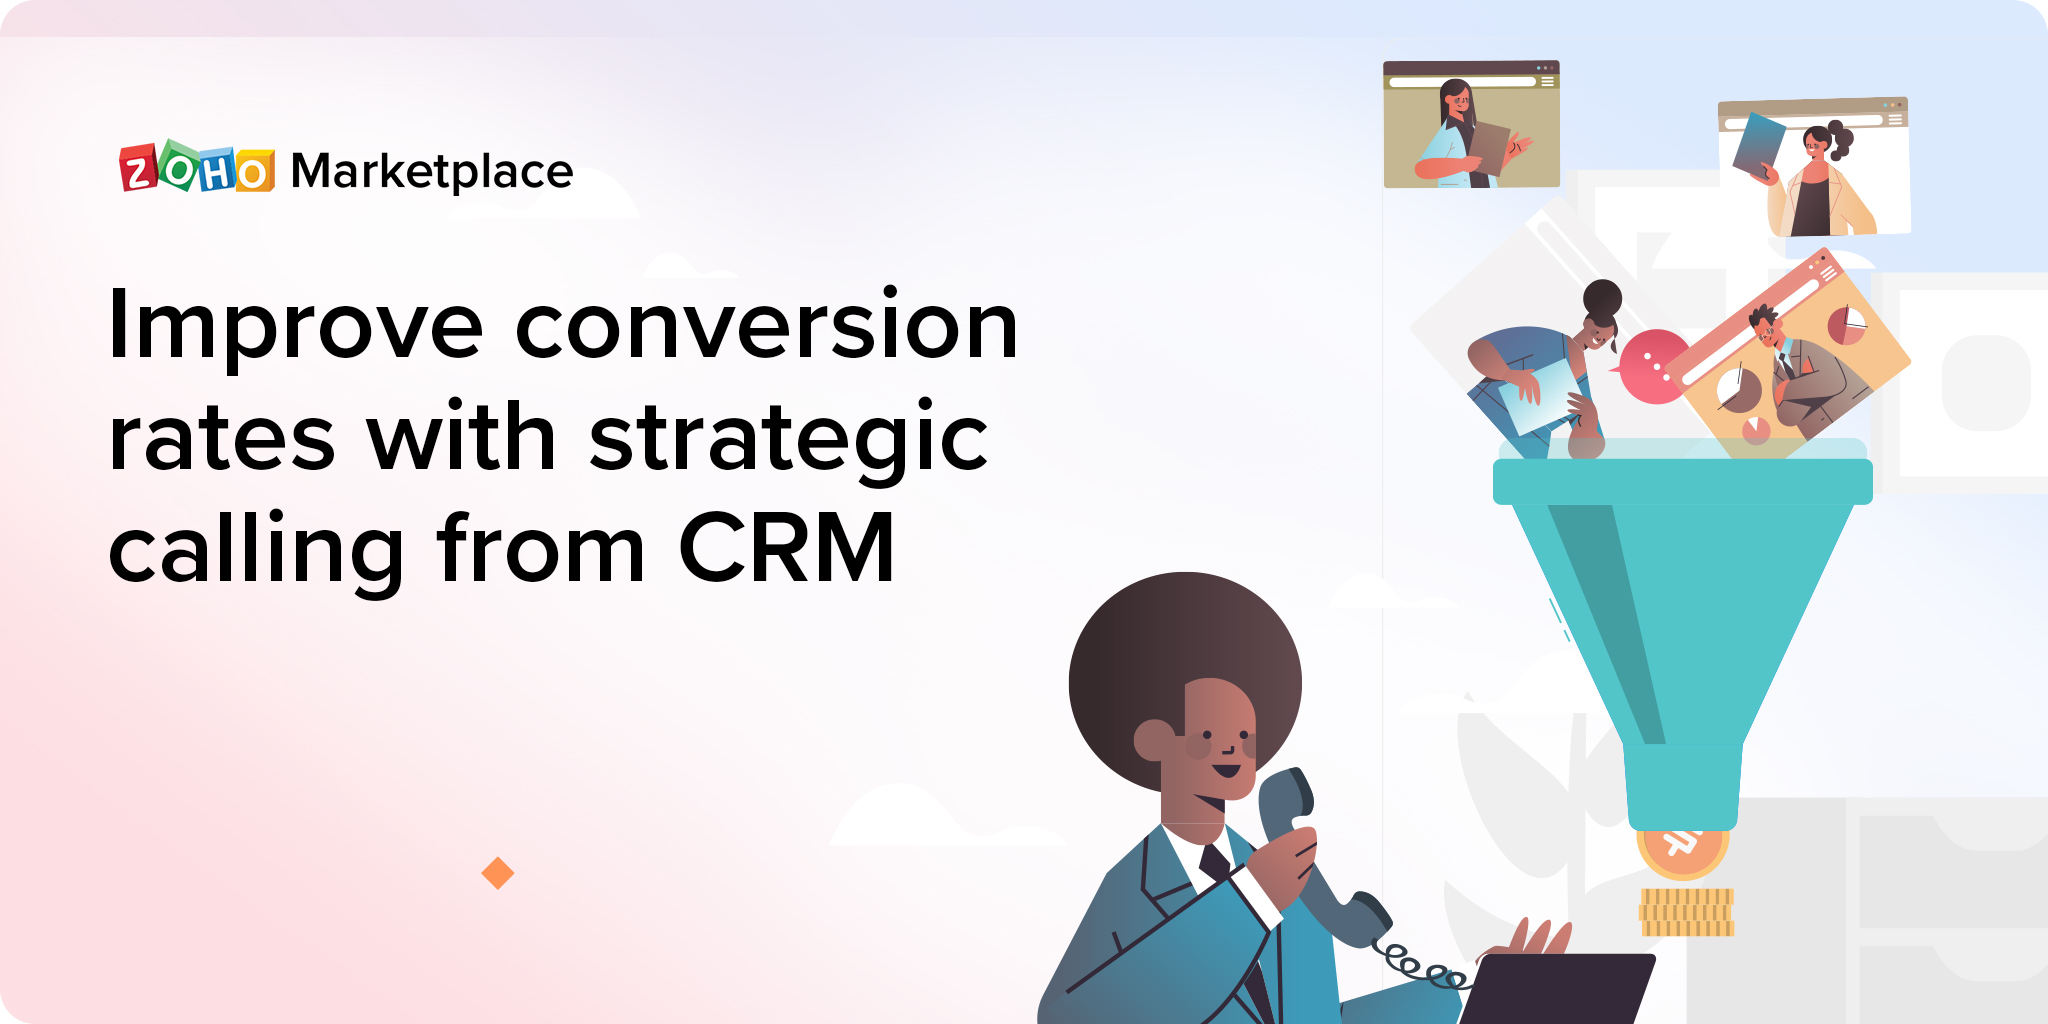 Improve conversion rates with strategic calling from CRM